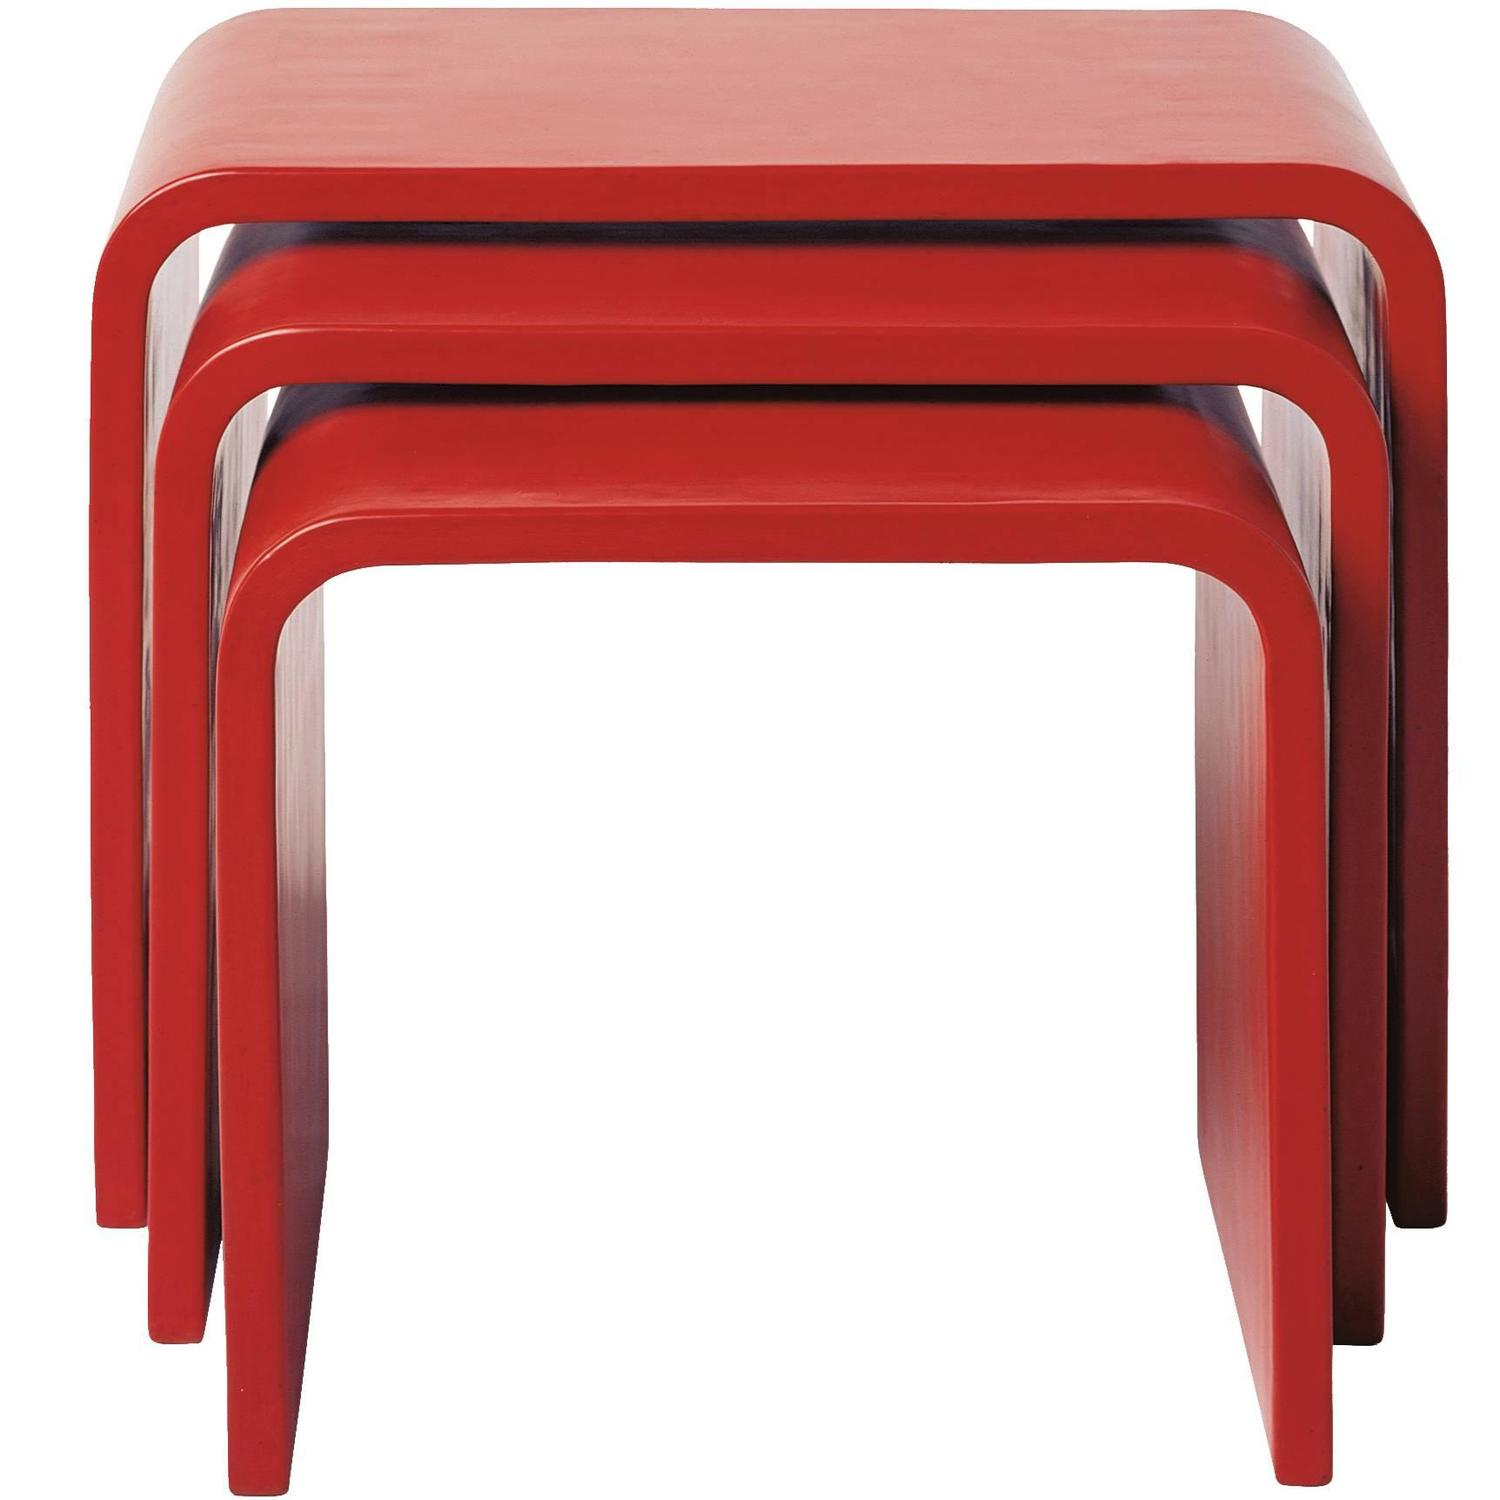 sc 1 st  1stDibs & Set of Waterfall Red Lacquer Nesting Table For Sale at 1stdibs